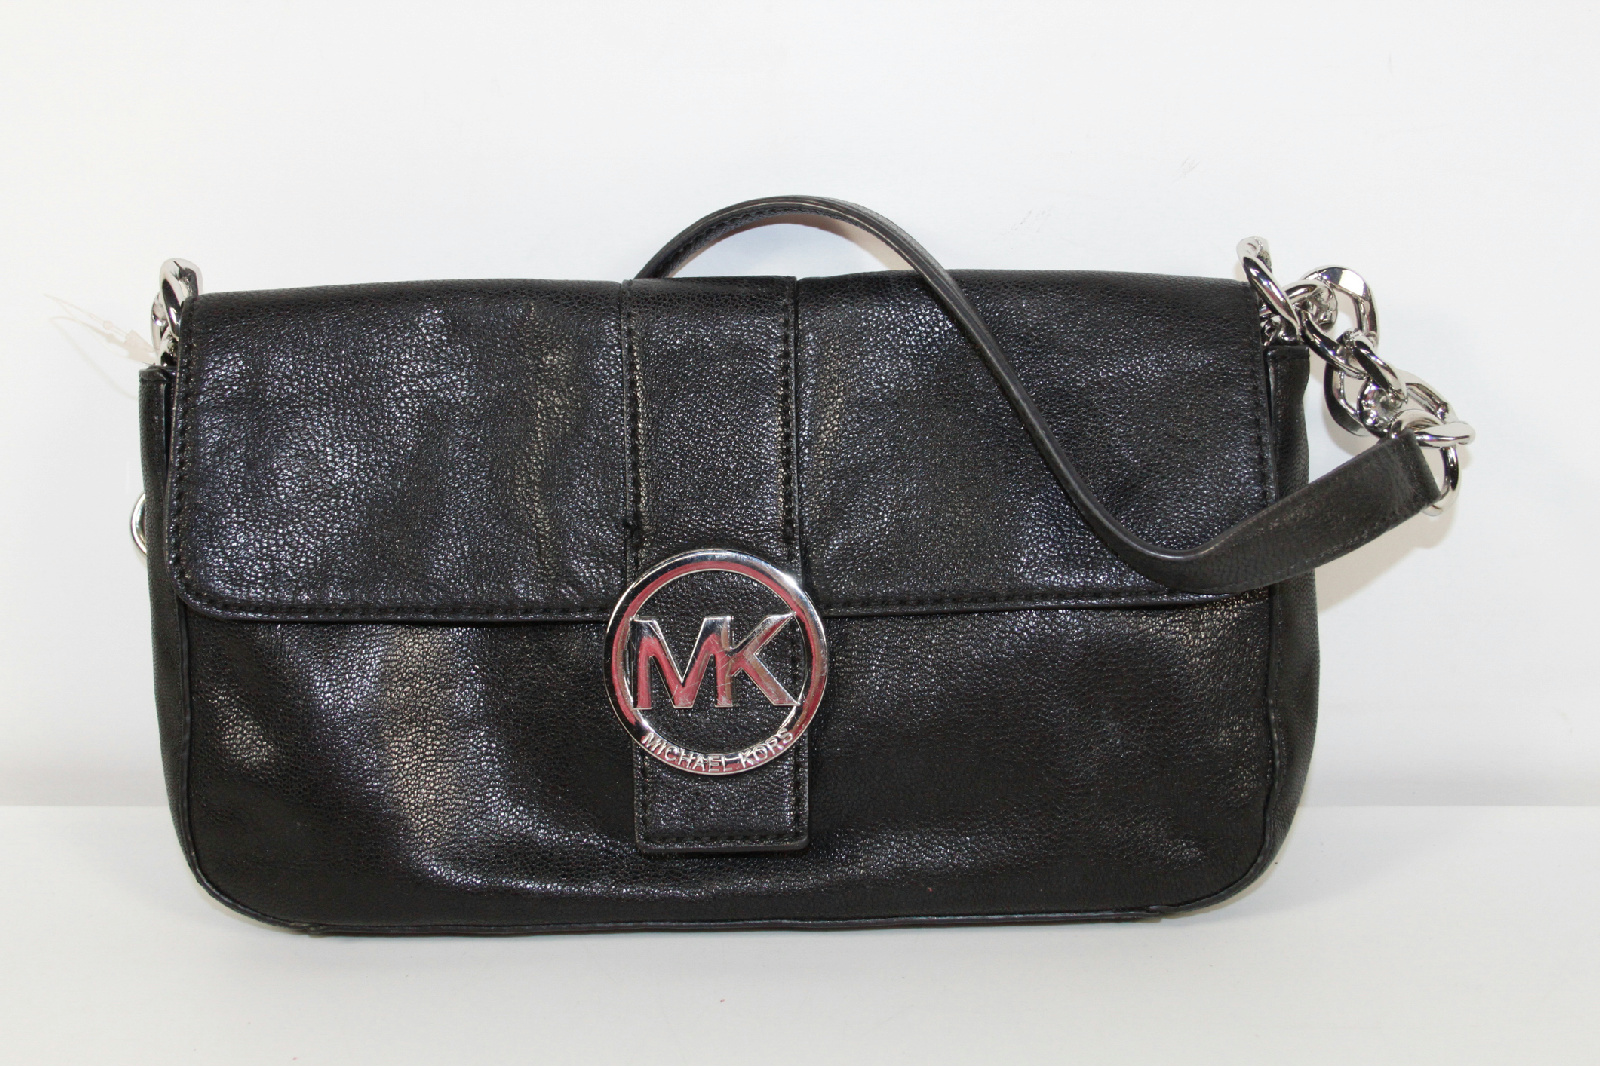 Michael Kors Black Chain Strap Shoulder Bag Purse